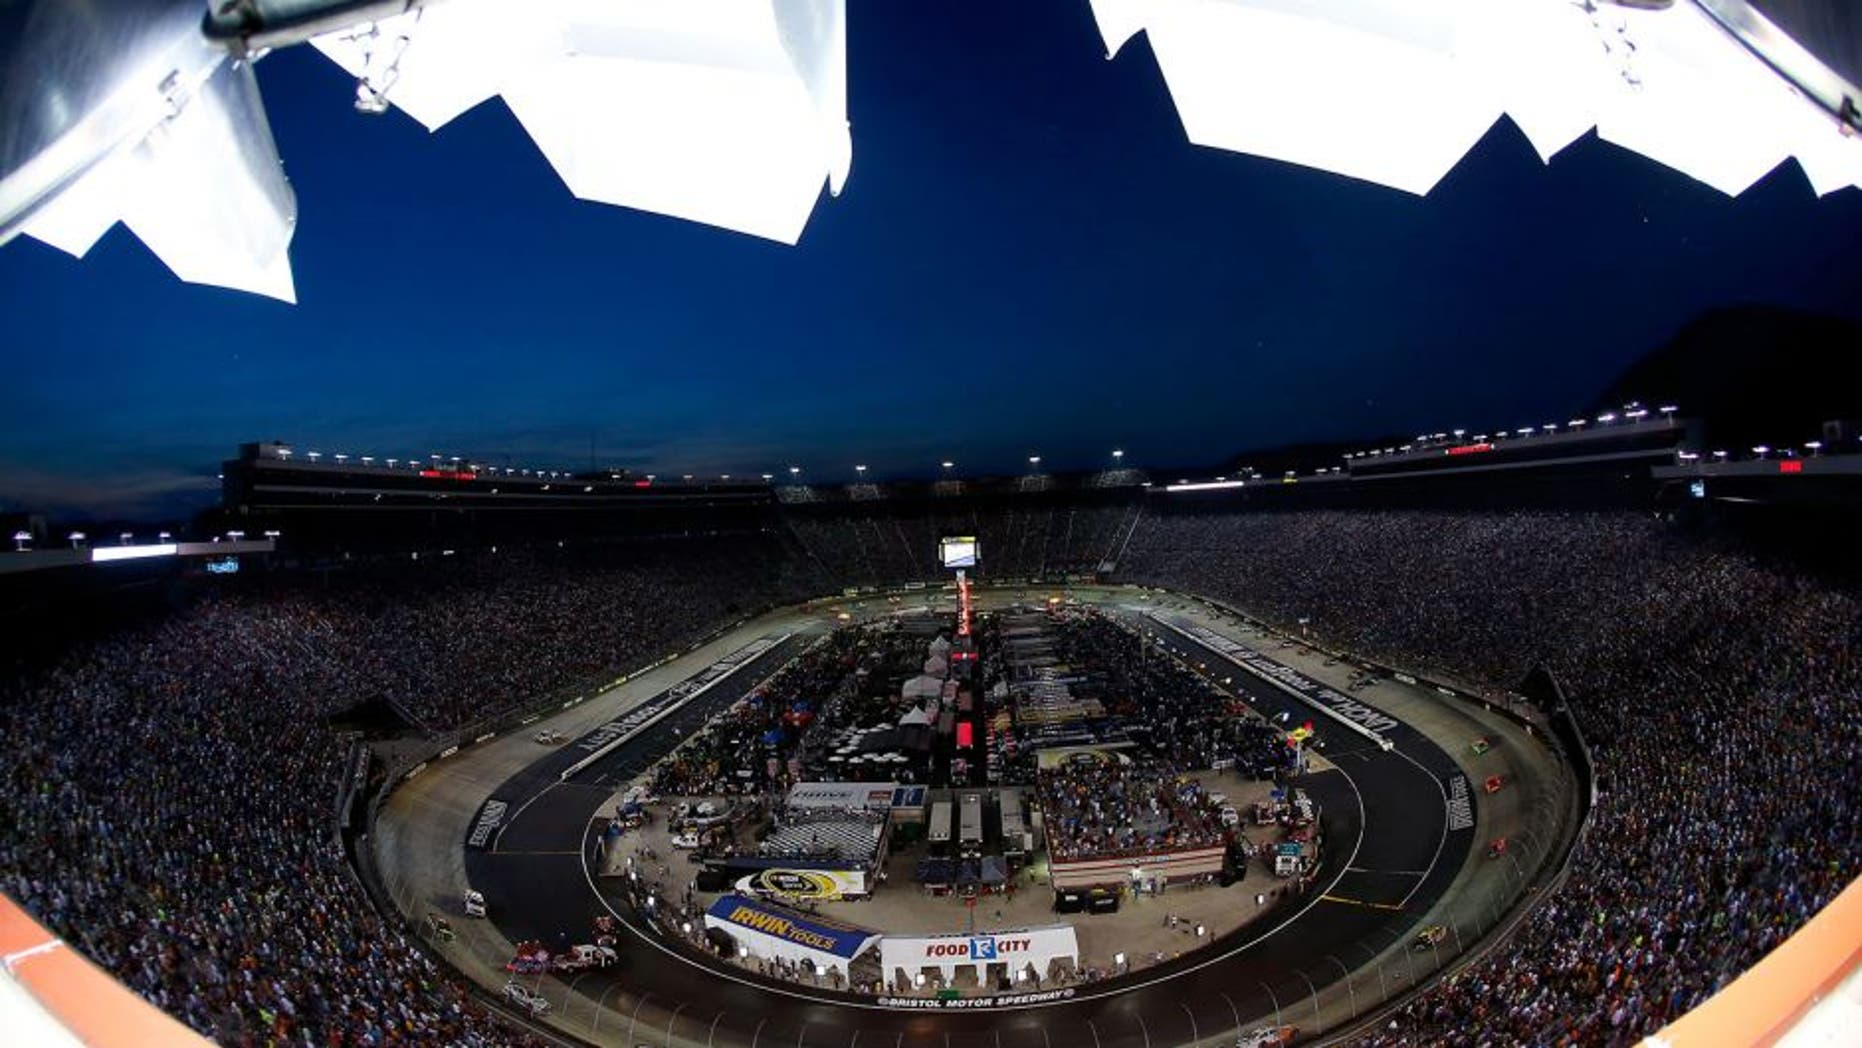 BRISTOL, TN - AUGUST 23: Cars race during the NASCAR Sprint Cup Series Irwin Tools Night Race at Bristol Motor Speedway on August 23, 2014 in Bristol, Tennessee. (Photo by Tom Pennington/NASCAR via Getty Images)